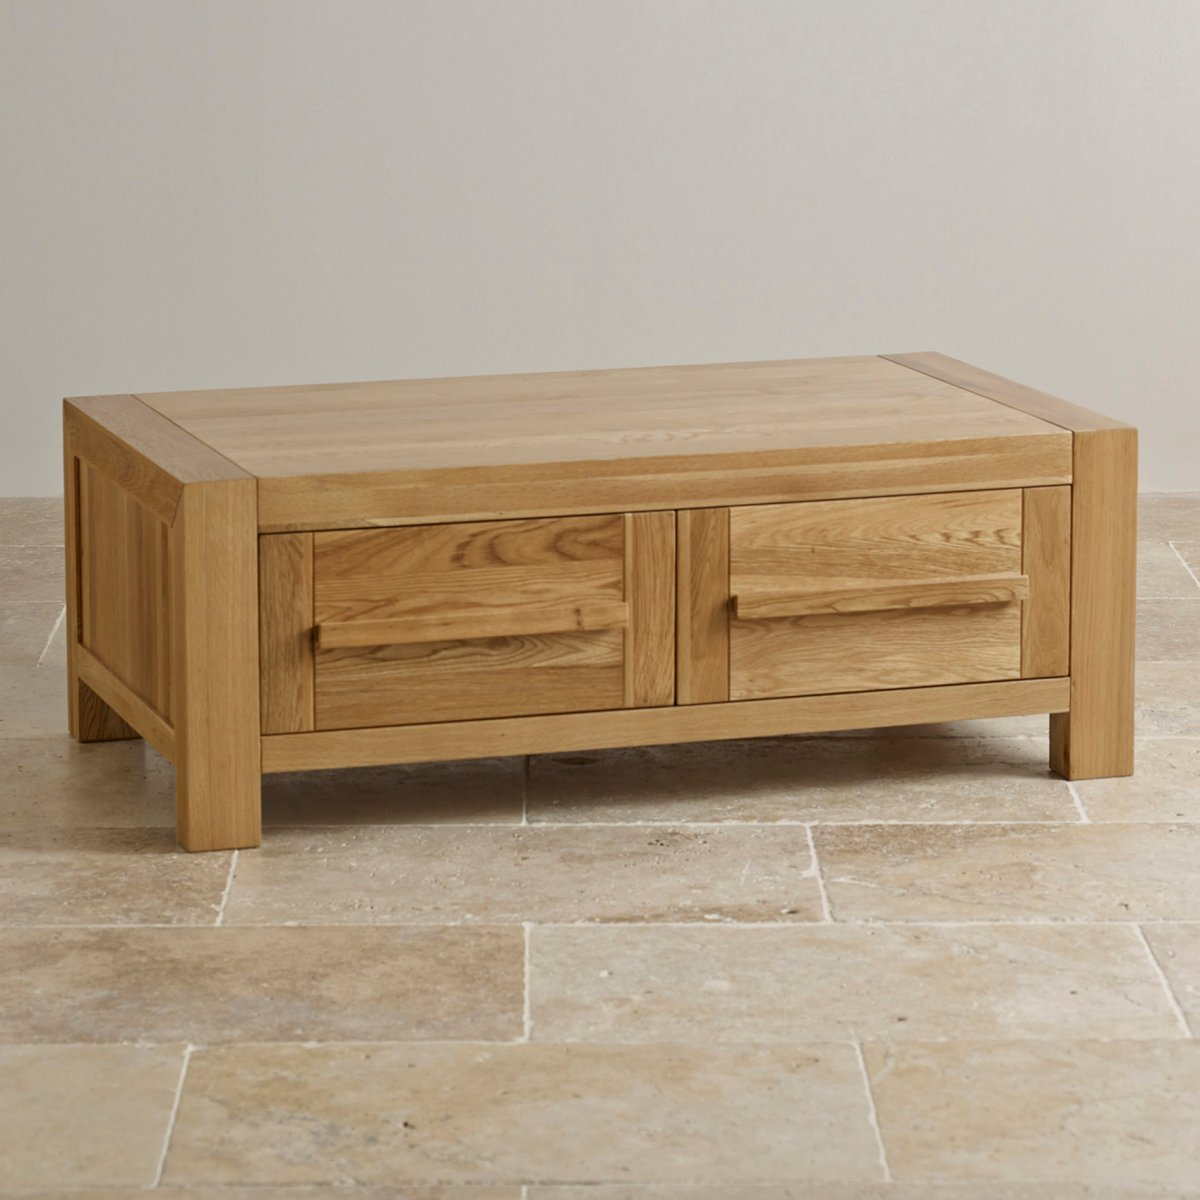 Fresco 2 drawer coffee table in solid oak oak furniture land for Solid oak furniture